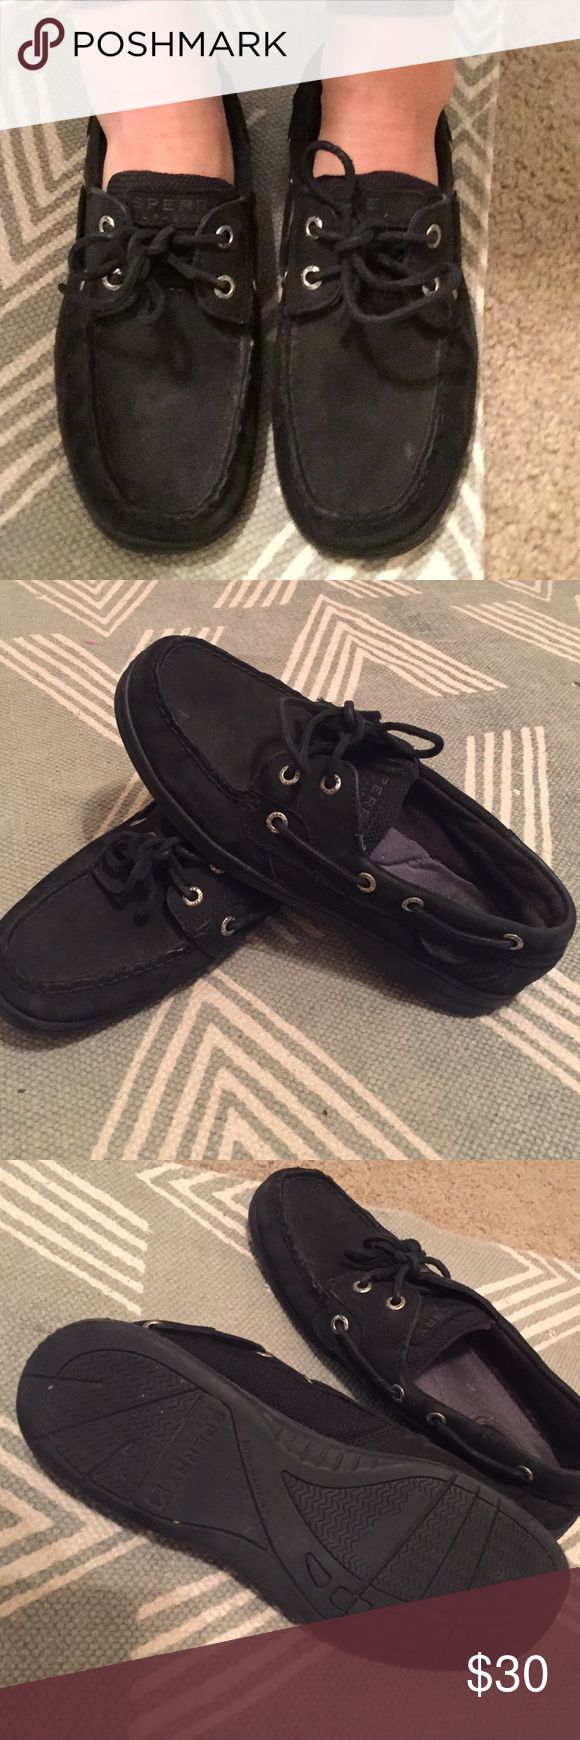 Black Sperrys Black suede Sperry's! Great condition. Women's size 7.5. Sperry Top-Sider Shoes